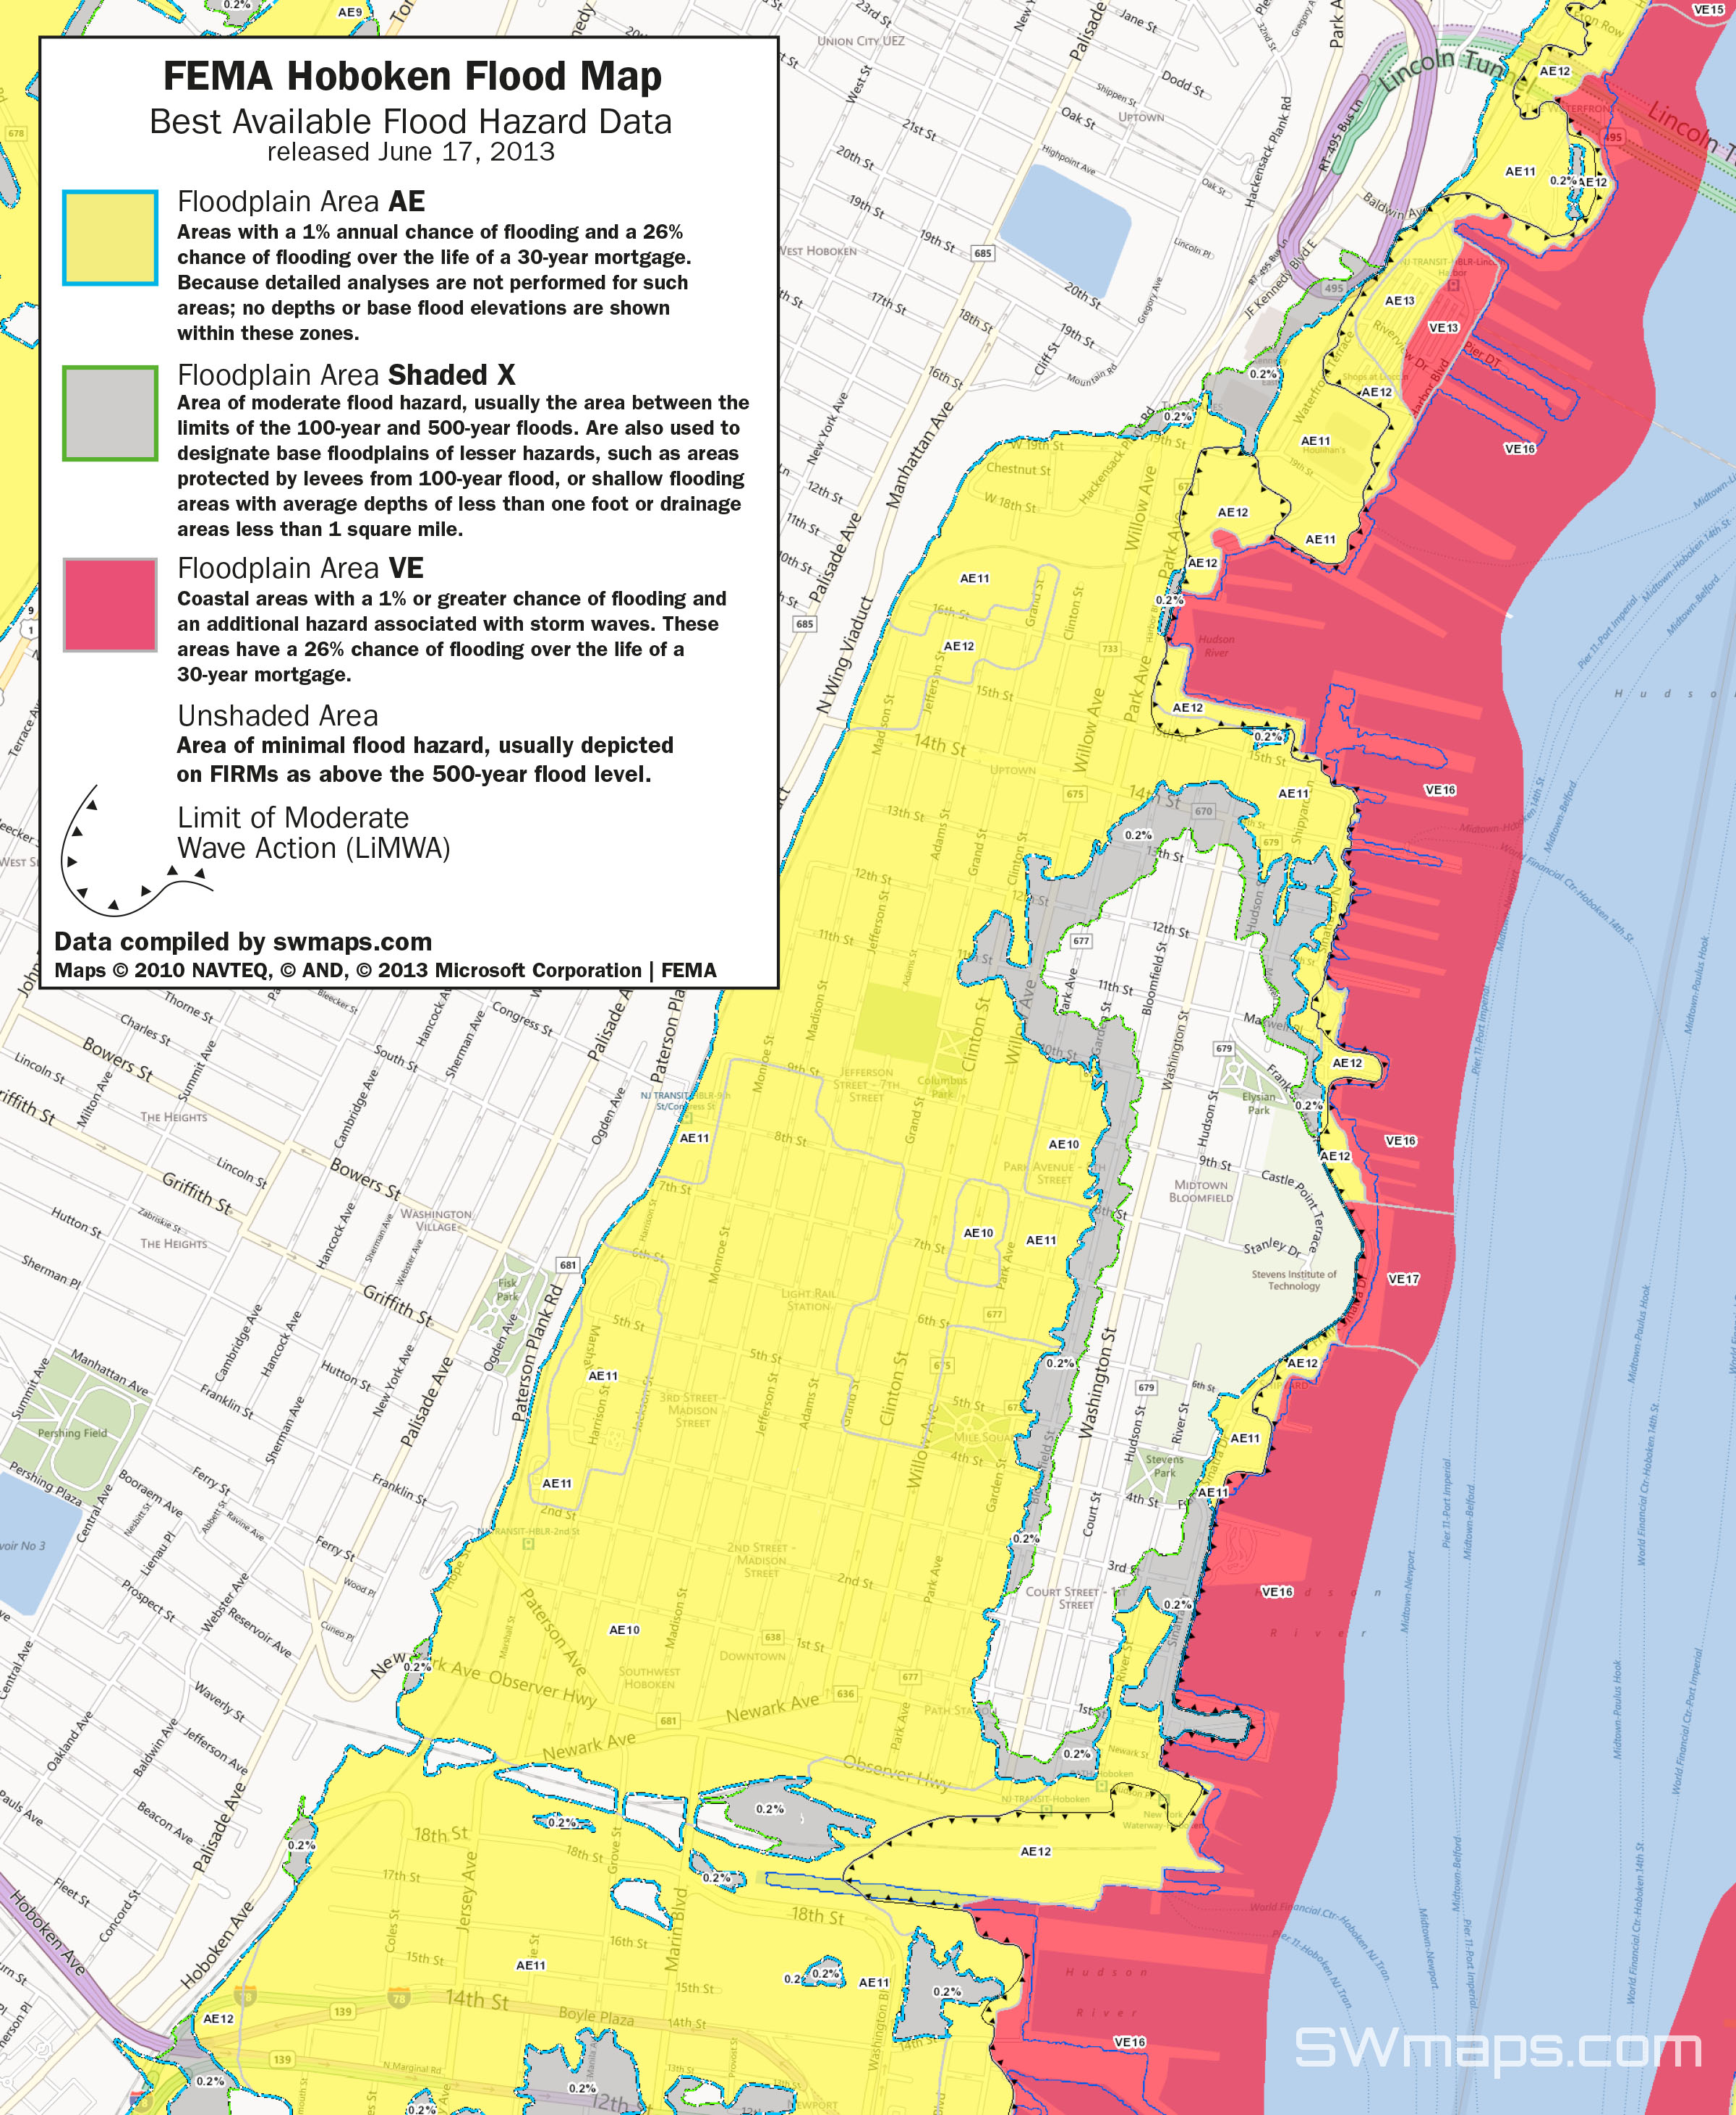 New Hoboken Flood Map FEMA Best Available Flood Hazard Data - Florida flood plain map